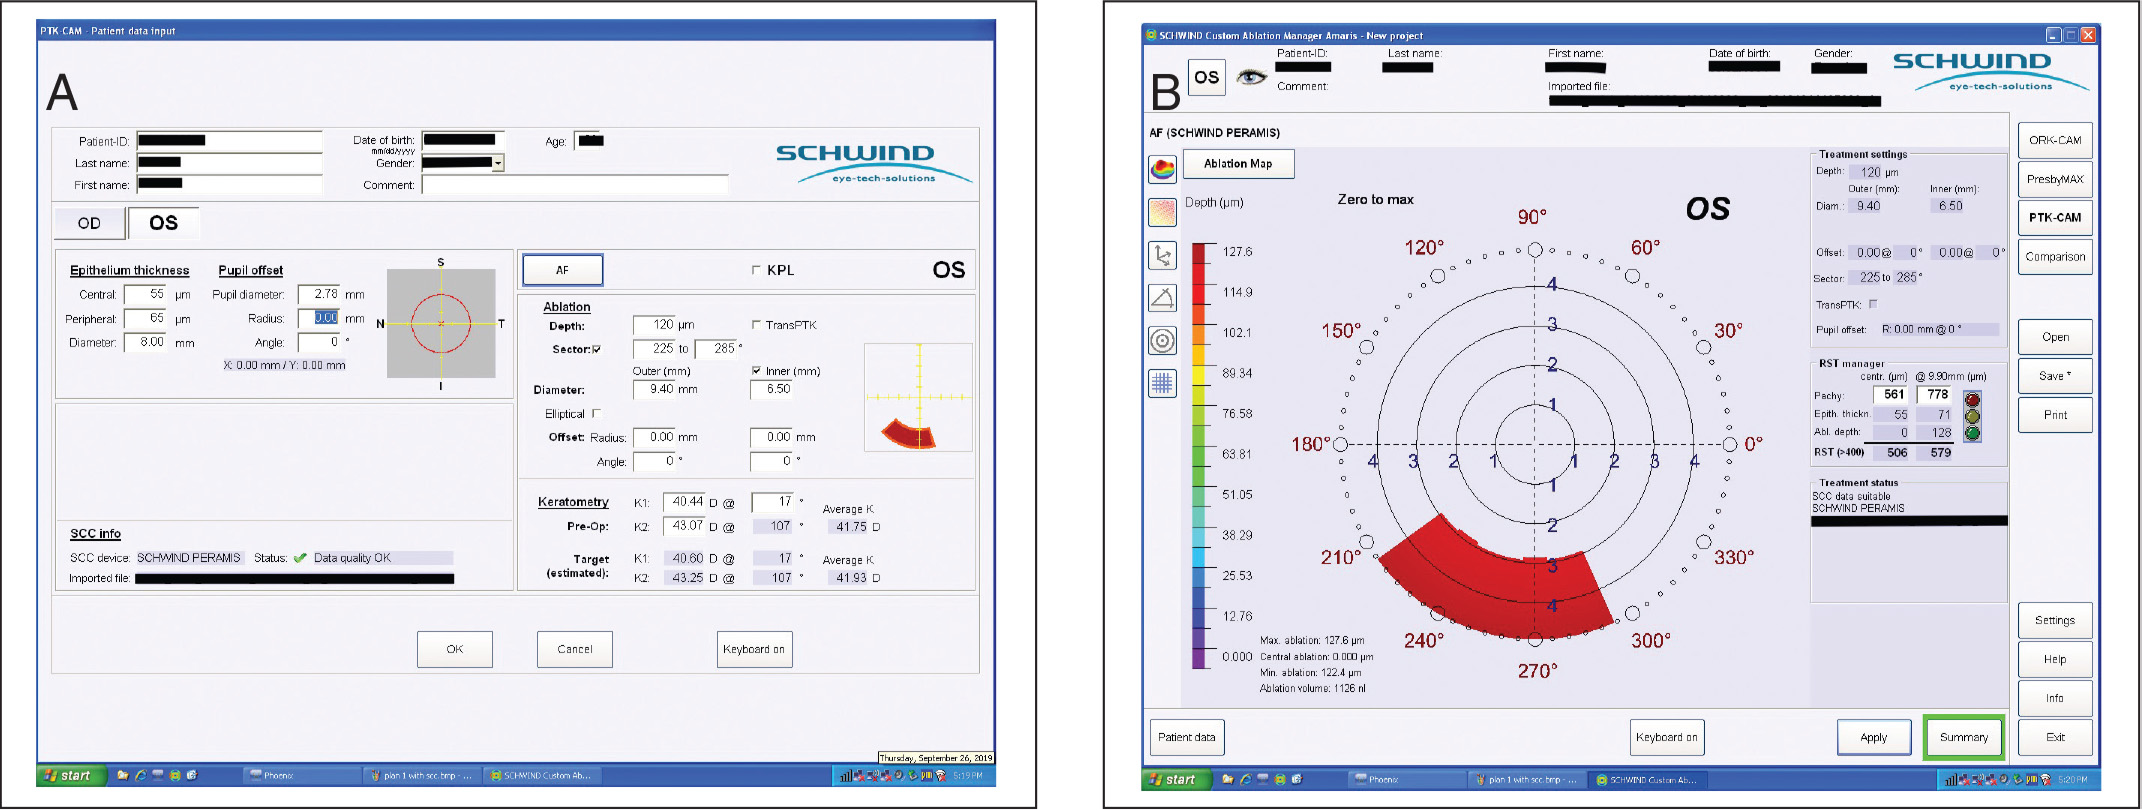 (A) Display screen of the customized ablation area phototherapeutic keratectomy setting of the CAM software (SCHWIND eye-tech-solutions GmbH) showing the input parameters of the ablation profile matching the target lesion. The pupil and treatment offset were chosen as zero to ensure the same centration as the image analysis software. (B) Display screen showing the generated ablation profile.